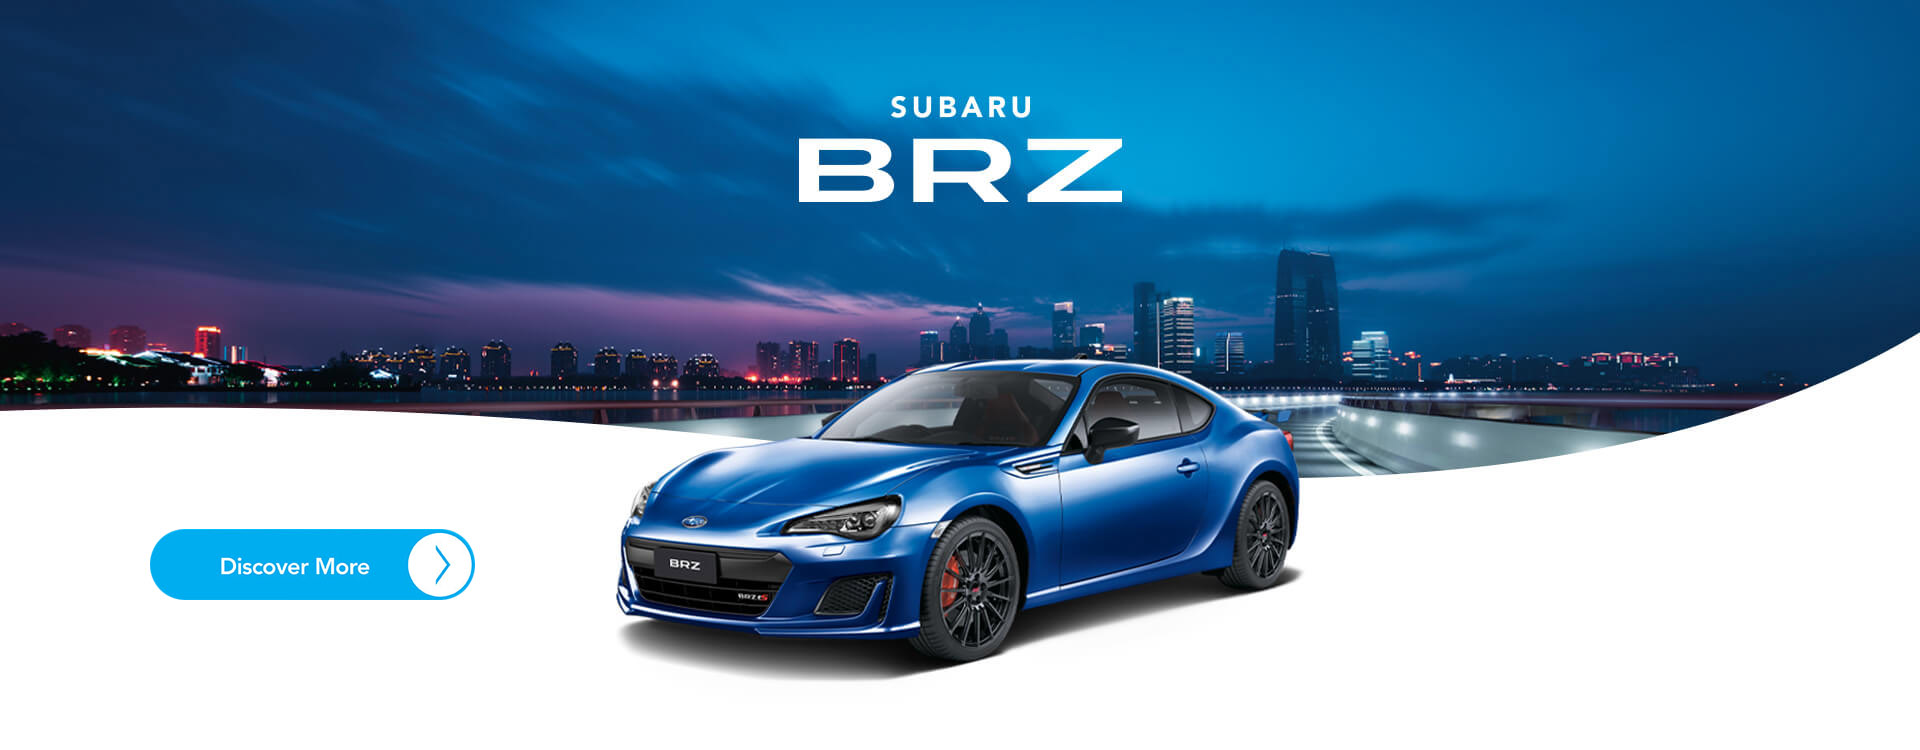 New MY20 Subaru BRZ now available at DC Motors Subaru, Rockhampton. Test Drive Today!